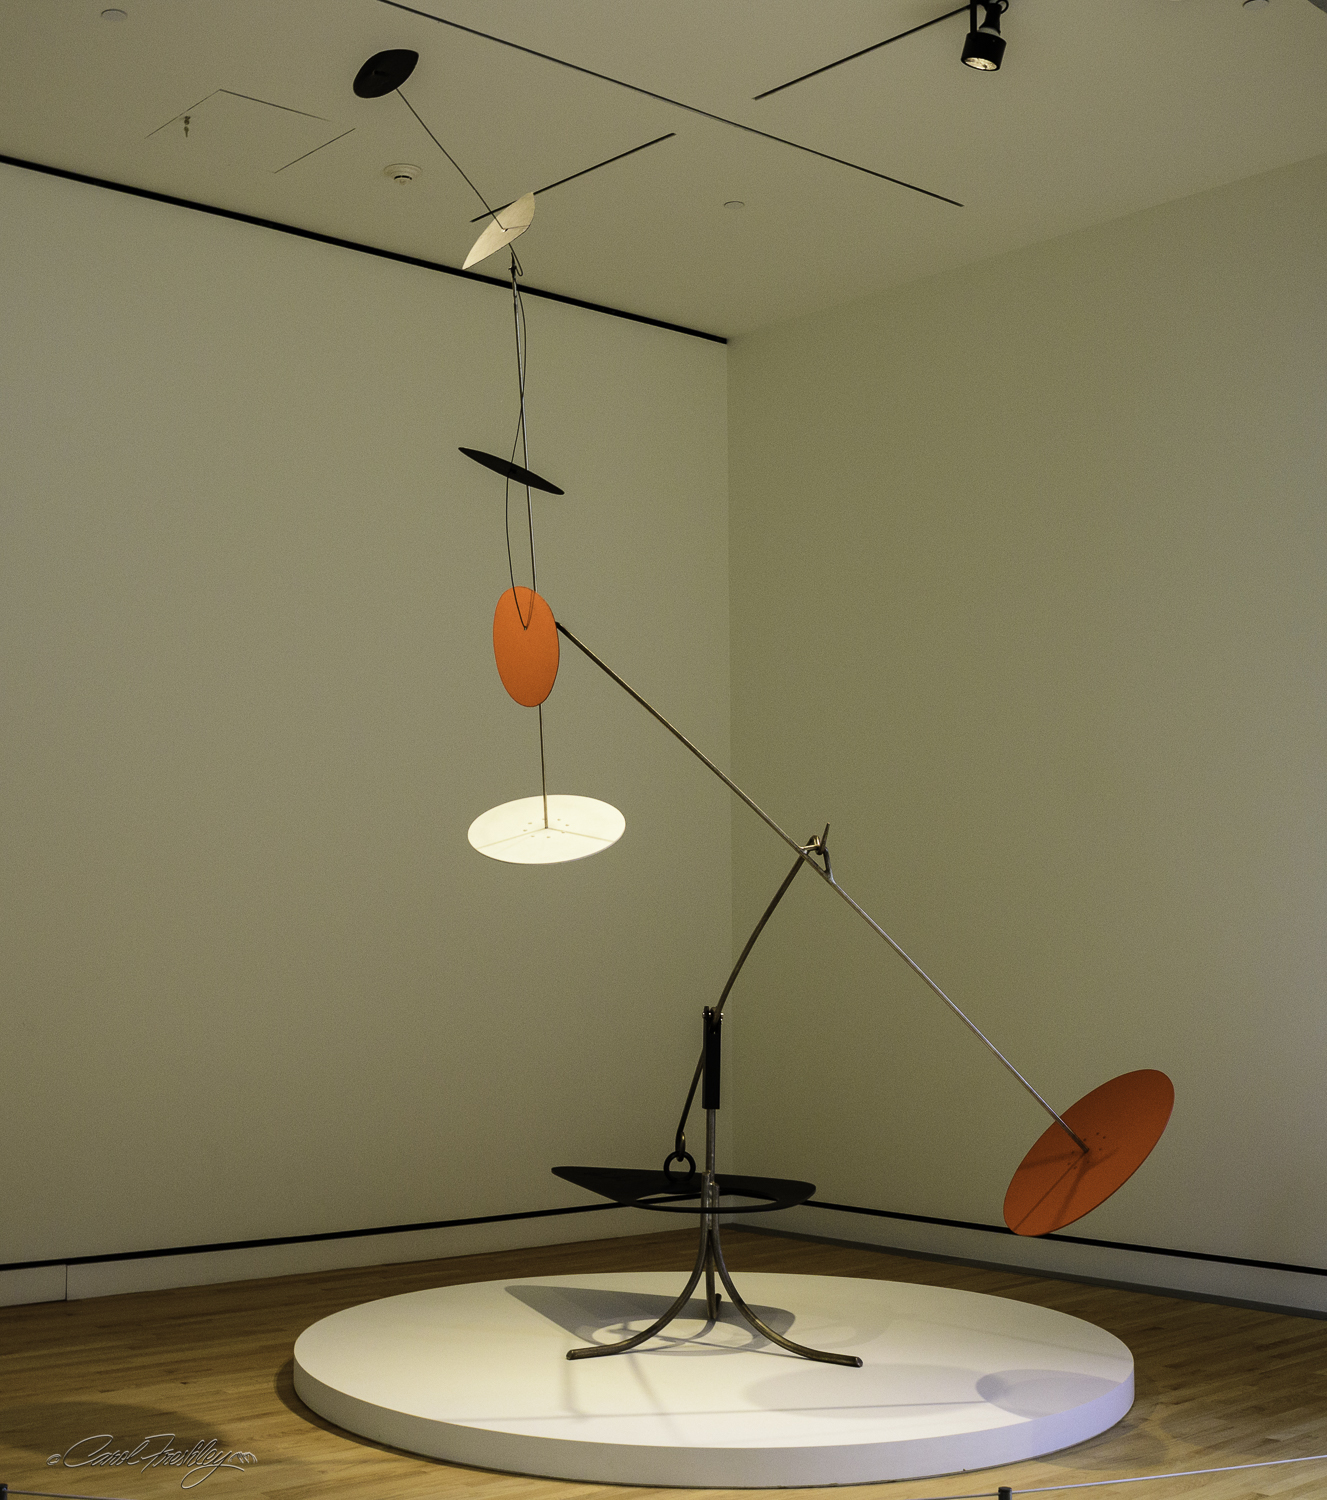 This mobile by Alexander Calder (1898-1976) is a classic example of Calder's standing mobiles.  Made of painted sheet metal,  Trois noirs sur un rouge (Three Blacks over Red) , 1968, achieves graceful balance in motion.  Calder, ''challenged the traditional definition of sculpture as three-dimensional mass, creating works of art made from metal rods and biomorphic sheet metal planes that move with the air in varied and spontaneous paths.""